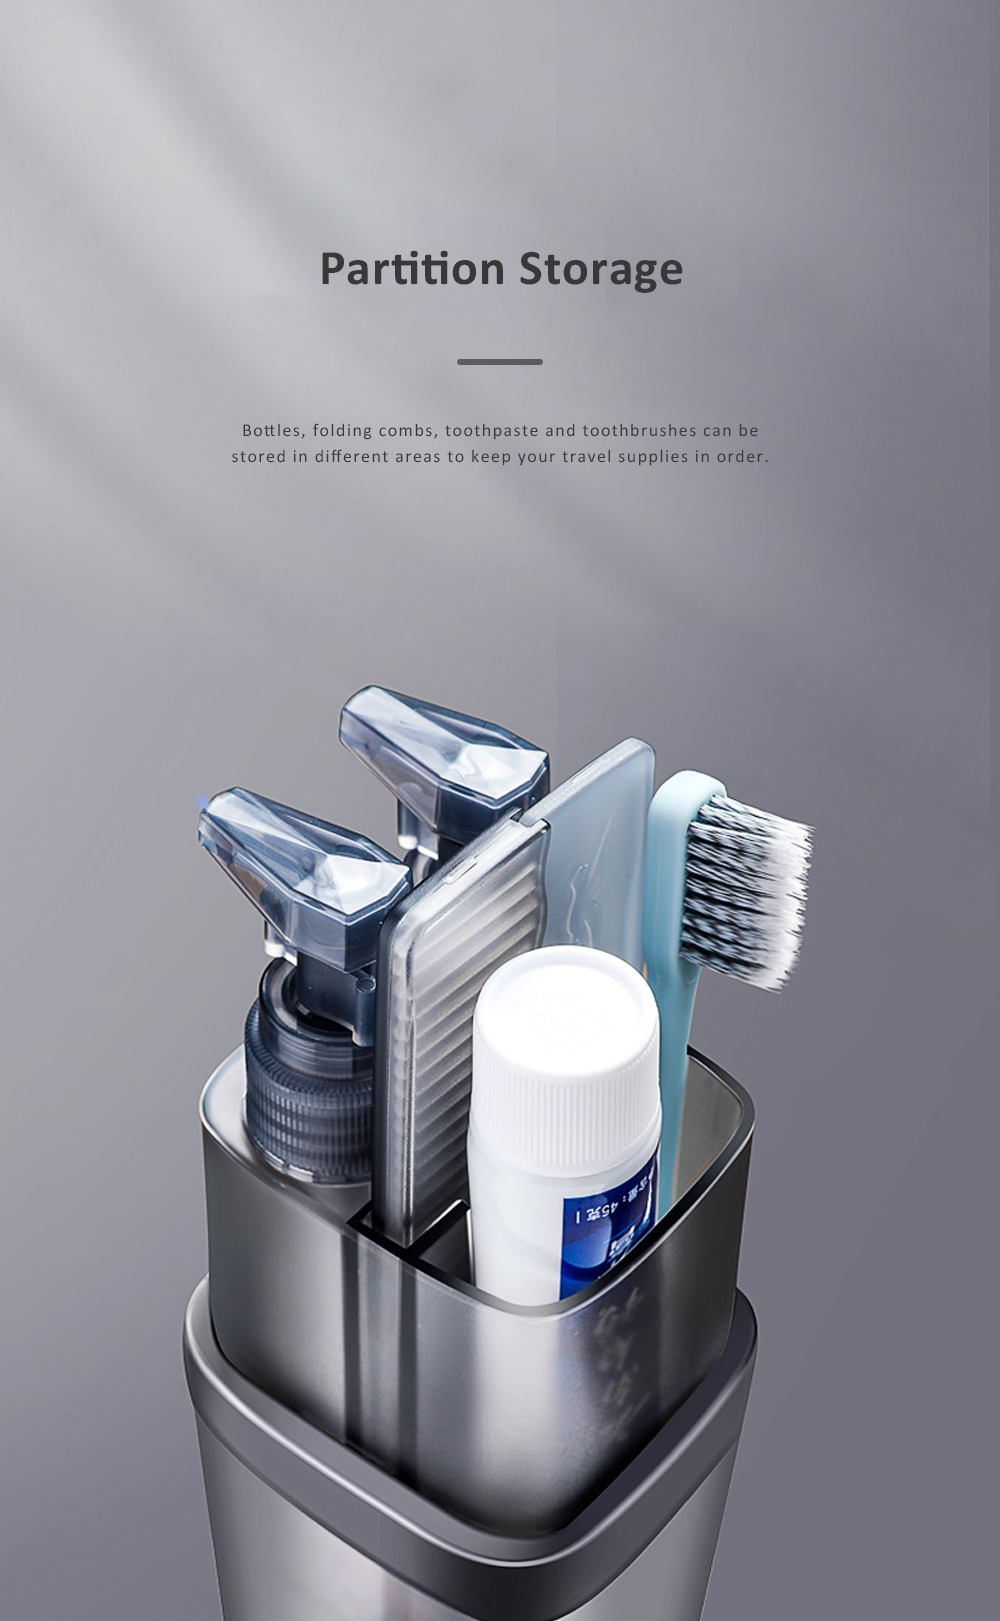 Etravel Travel Toiletries Storage Cup Portable Toothbrush Cup 8 in 1 Bathroom Accessories Storage Cup Gray Purple 4